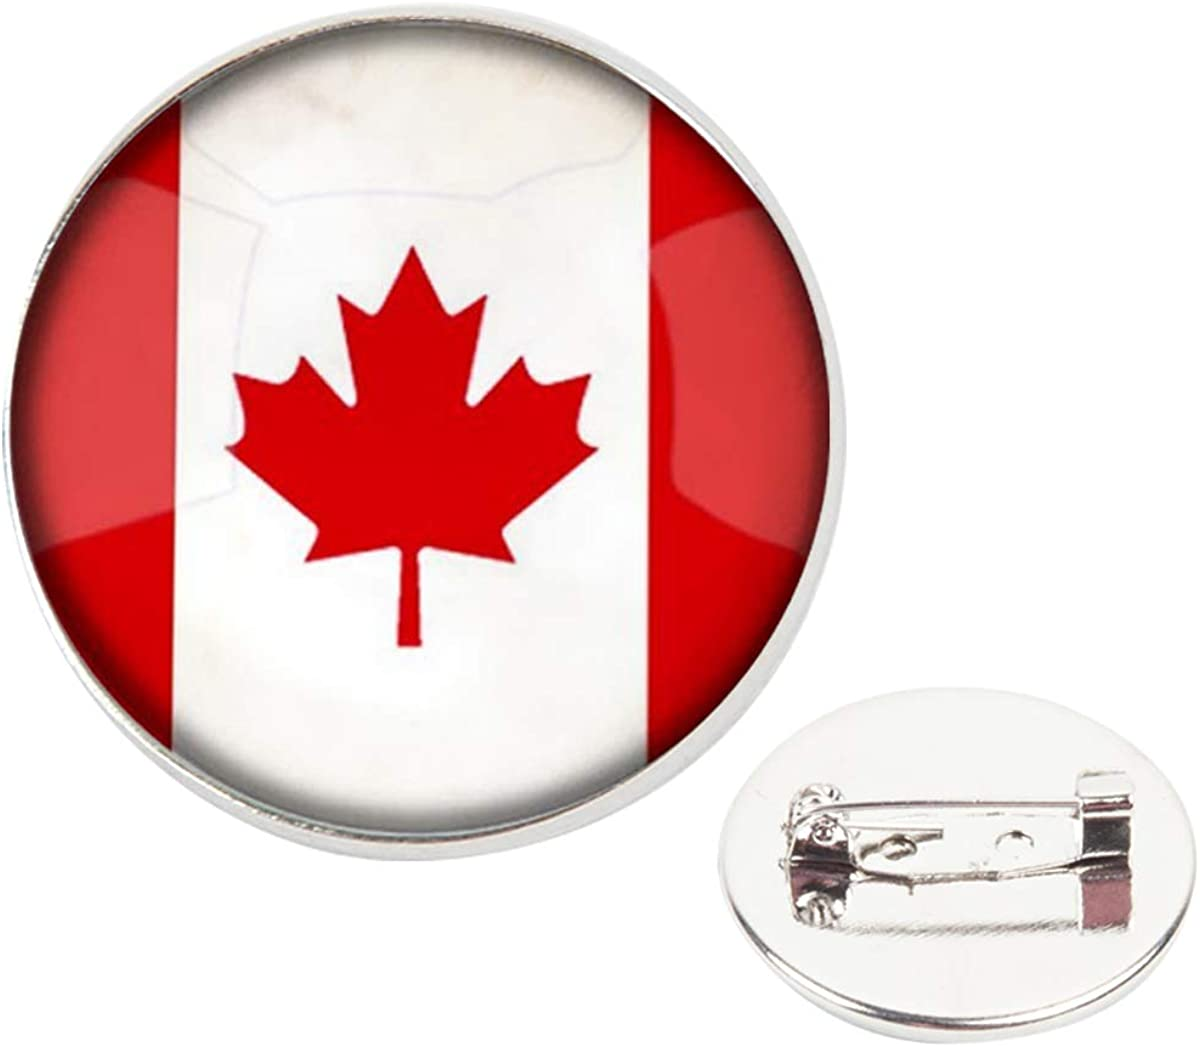 pins pin/'s flag national badge metal lapel backpack hat button vest canada